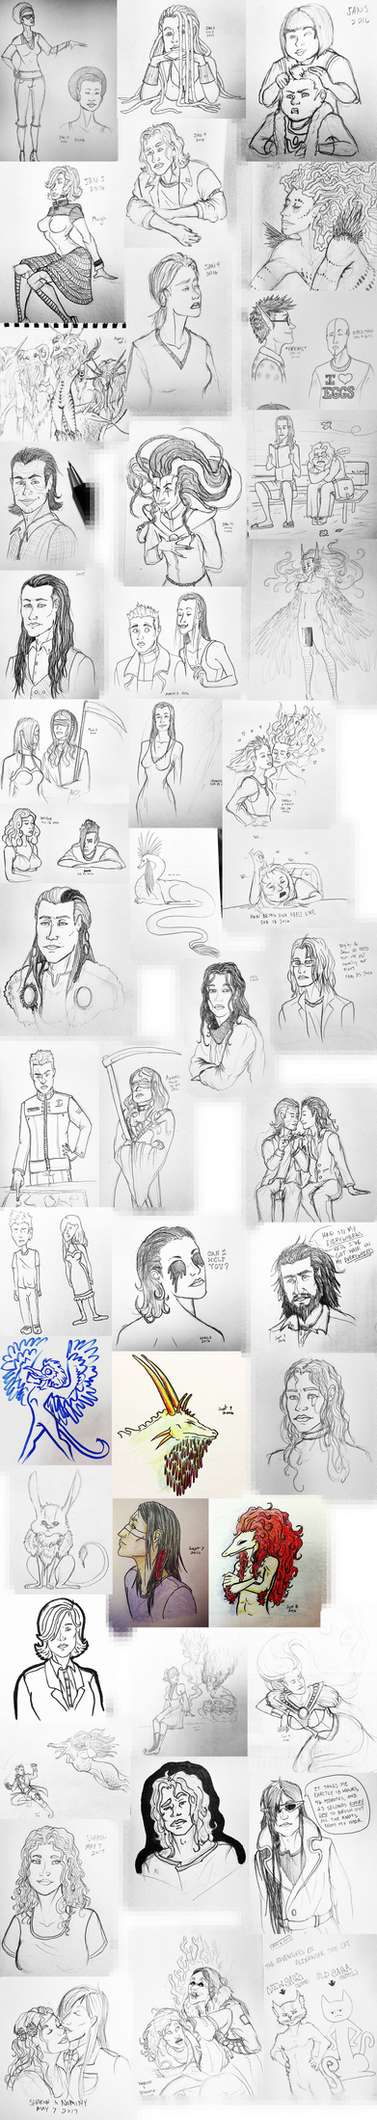 Sketch Dump 2014 to 2017 by Anomalies13